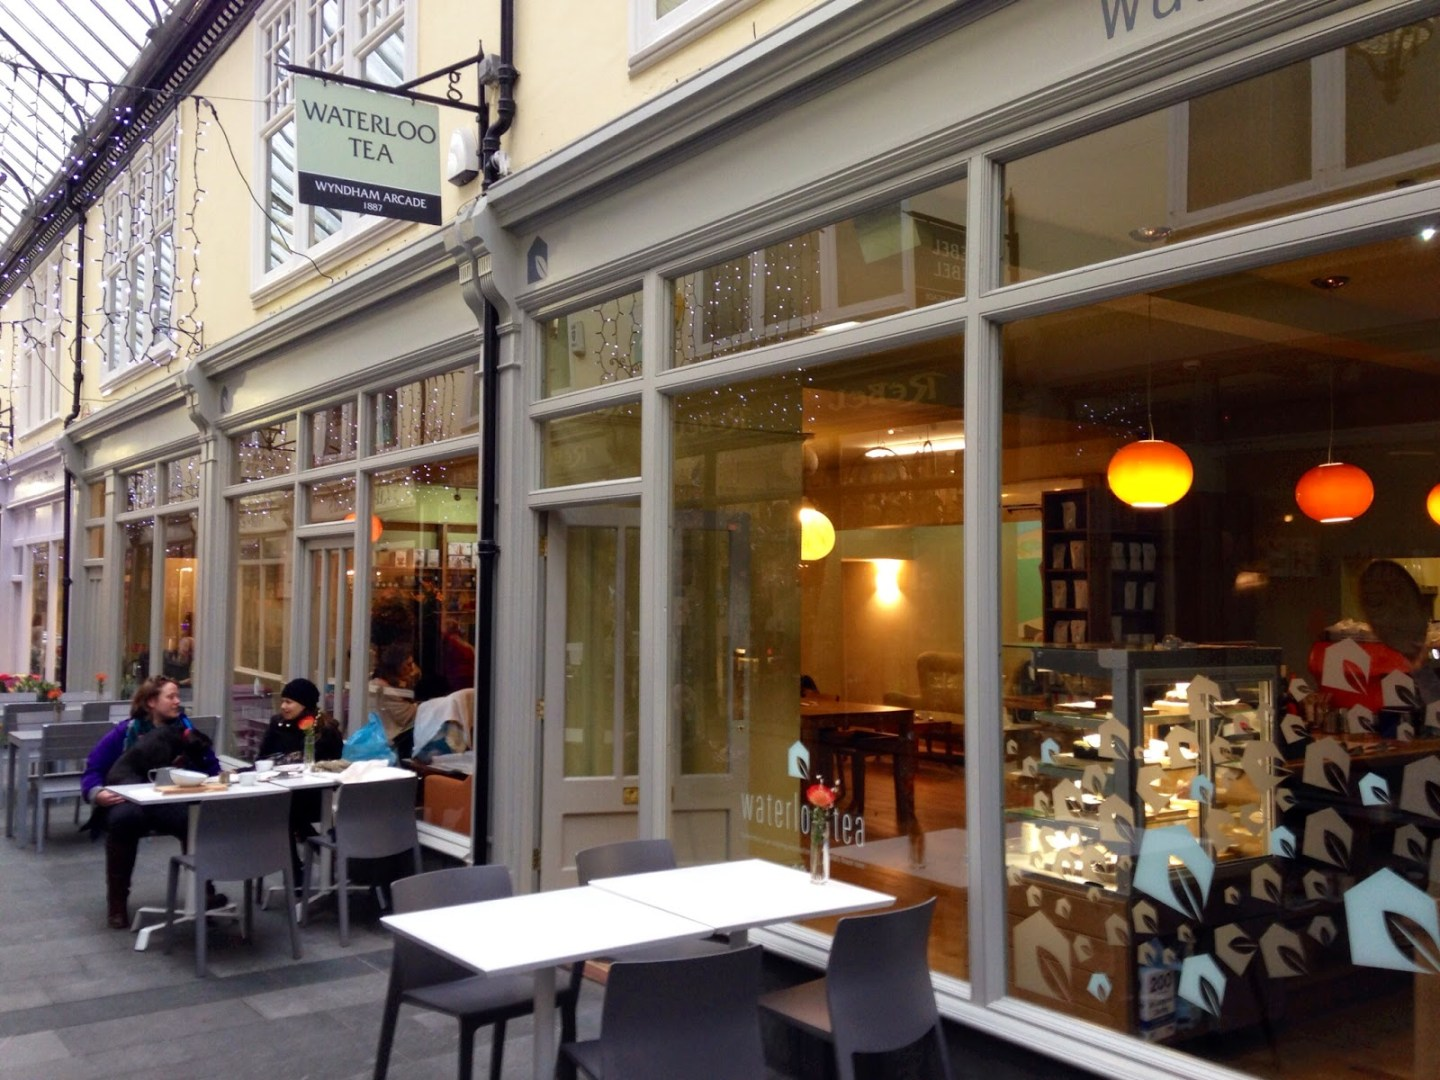 Waterloo Tea opens third cafe in Wyndham Arcade, Cardiff